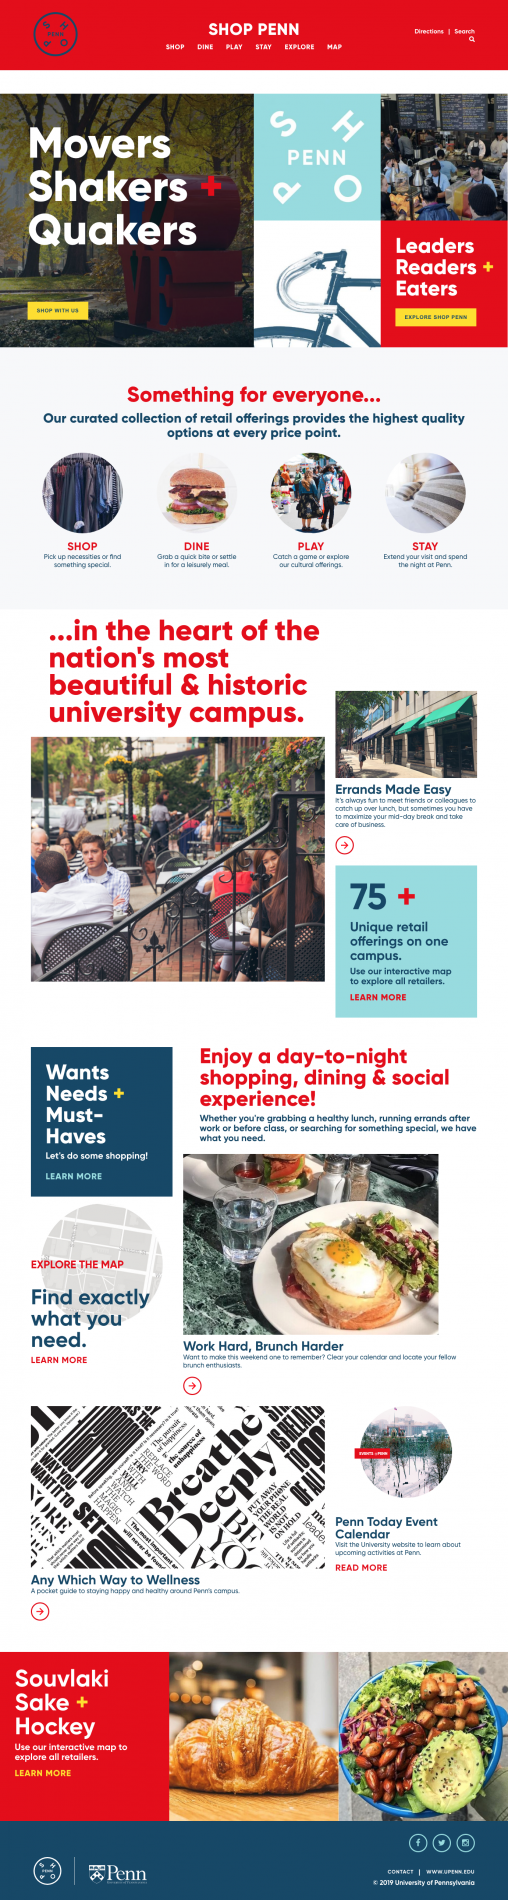 University of Pennsylvania's Shop Penn Website Homepage